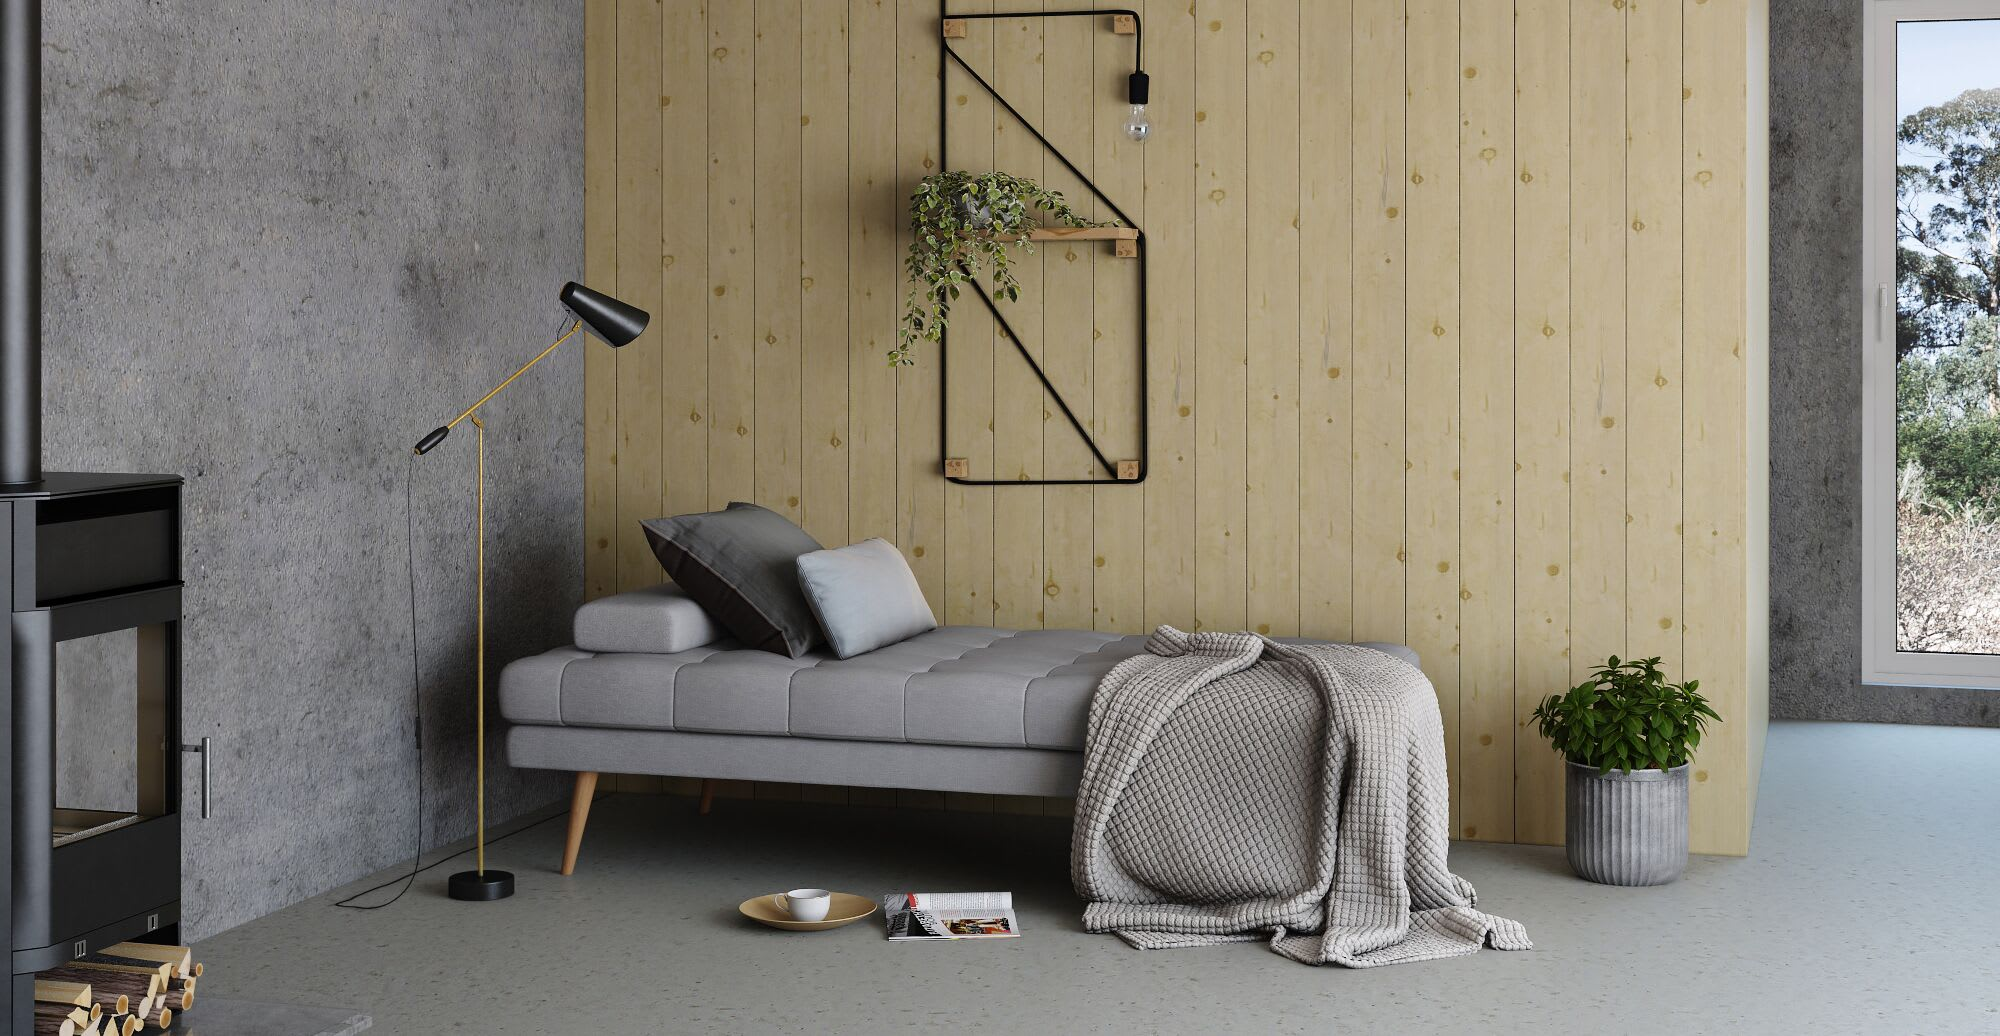 a grey sofa bed in a designed space